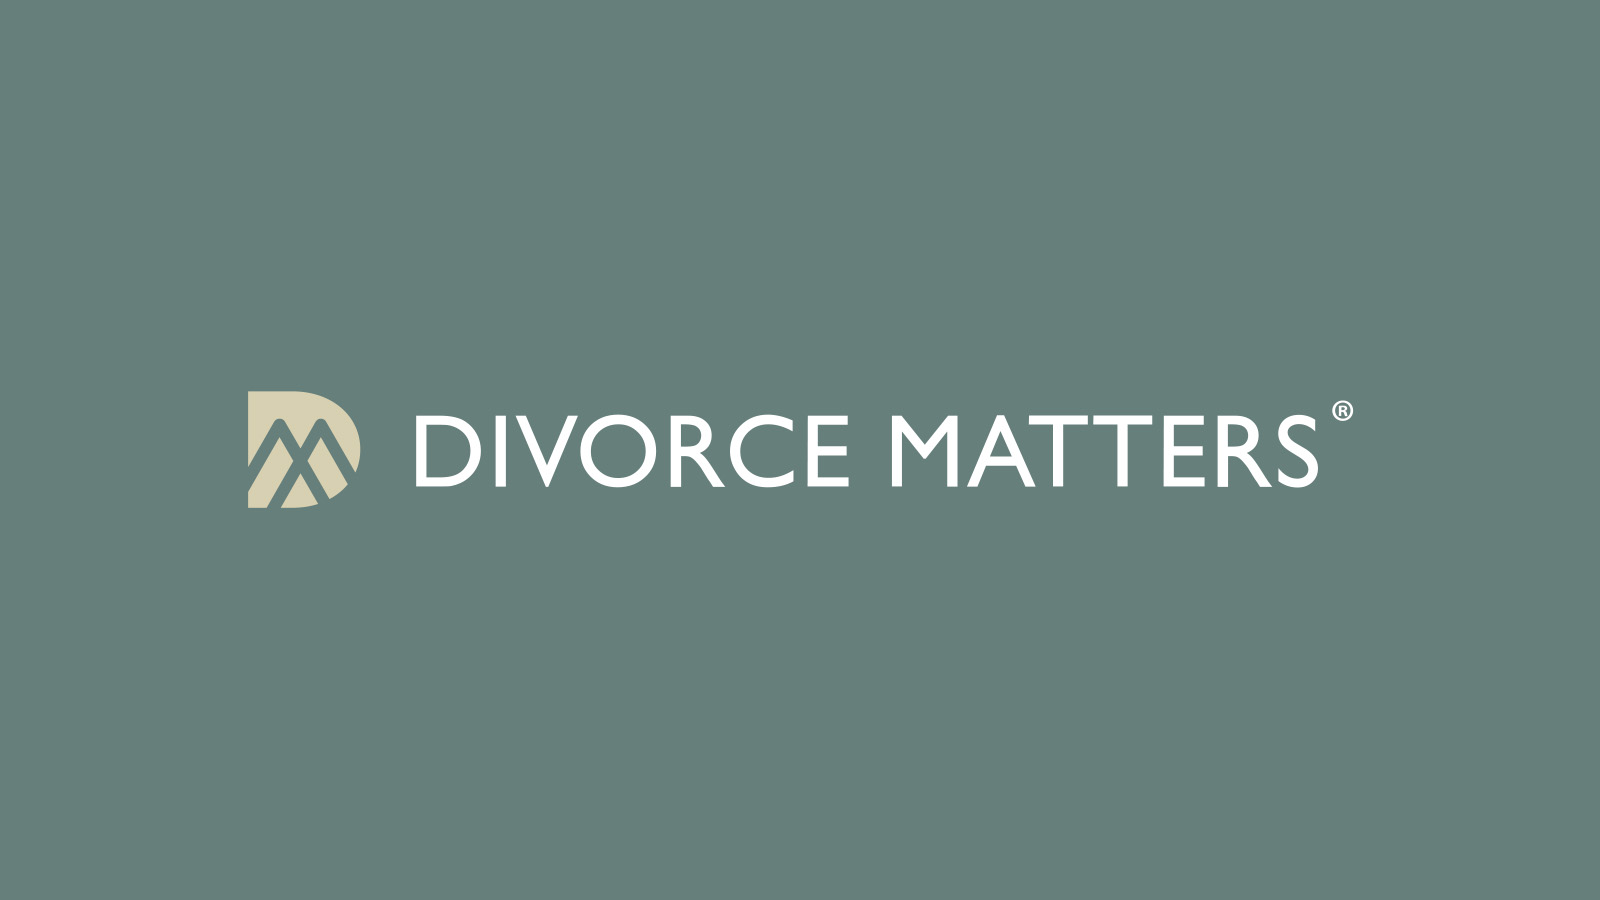 October 16th, 2020 – Divorce Matters Attorney Kim Moreno